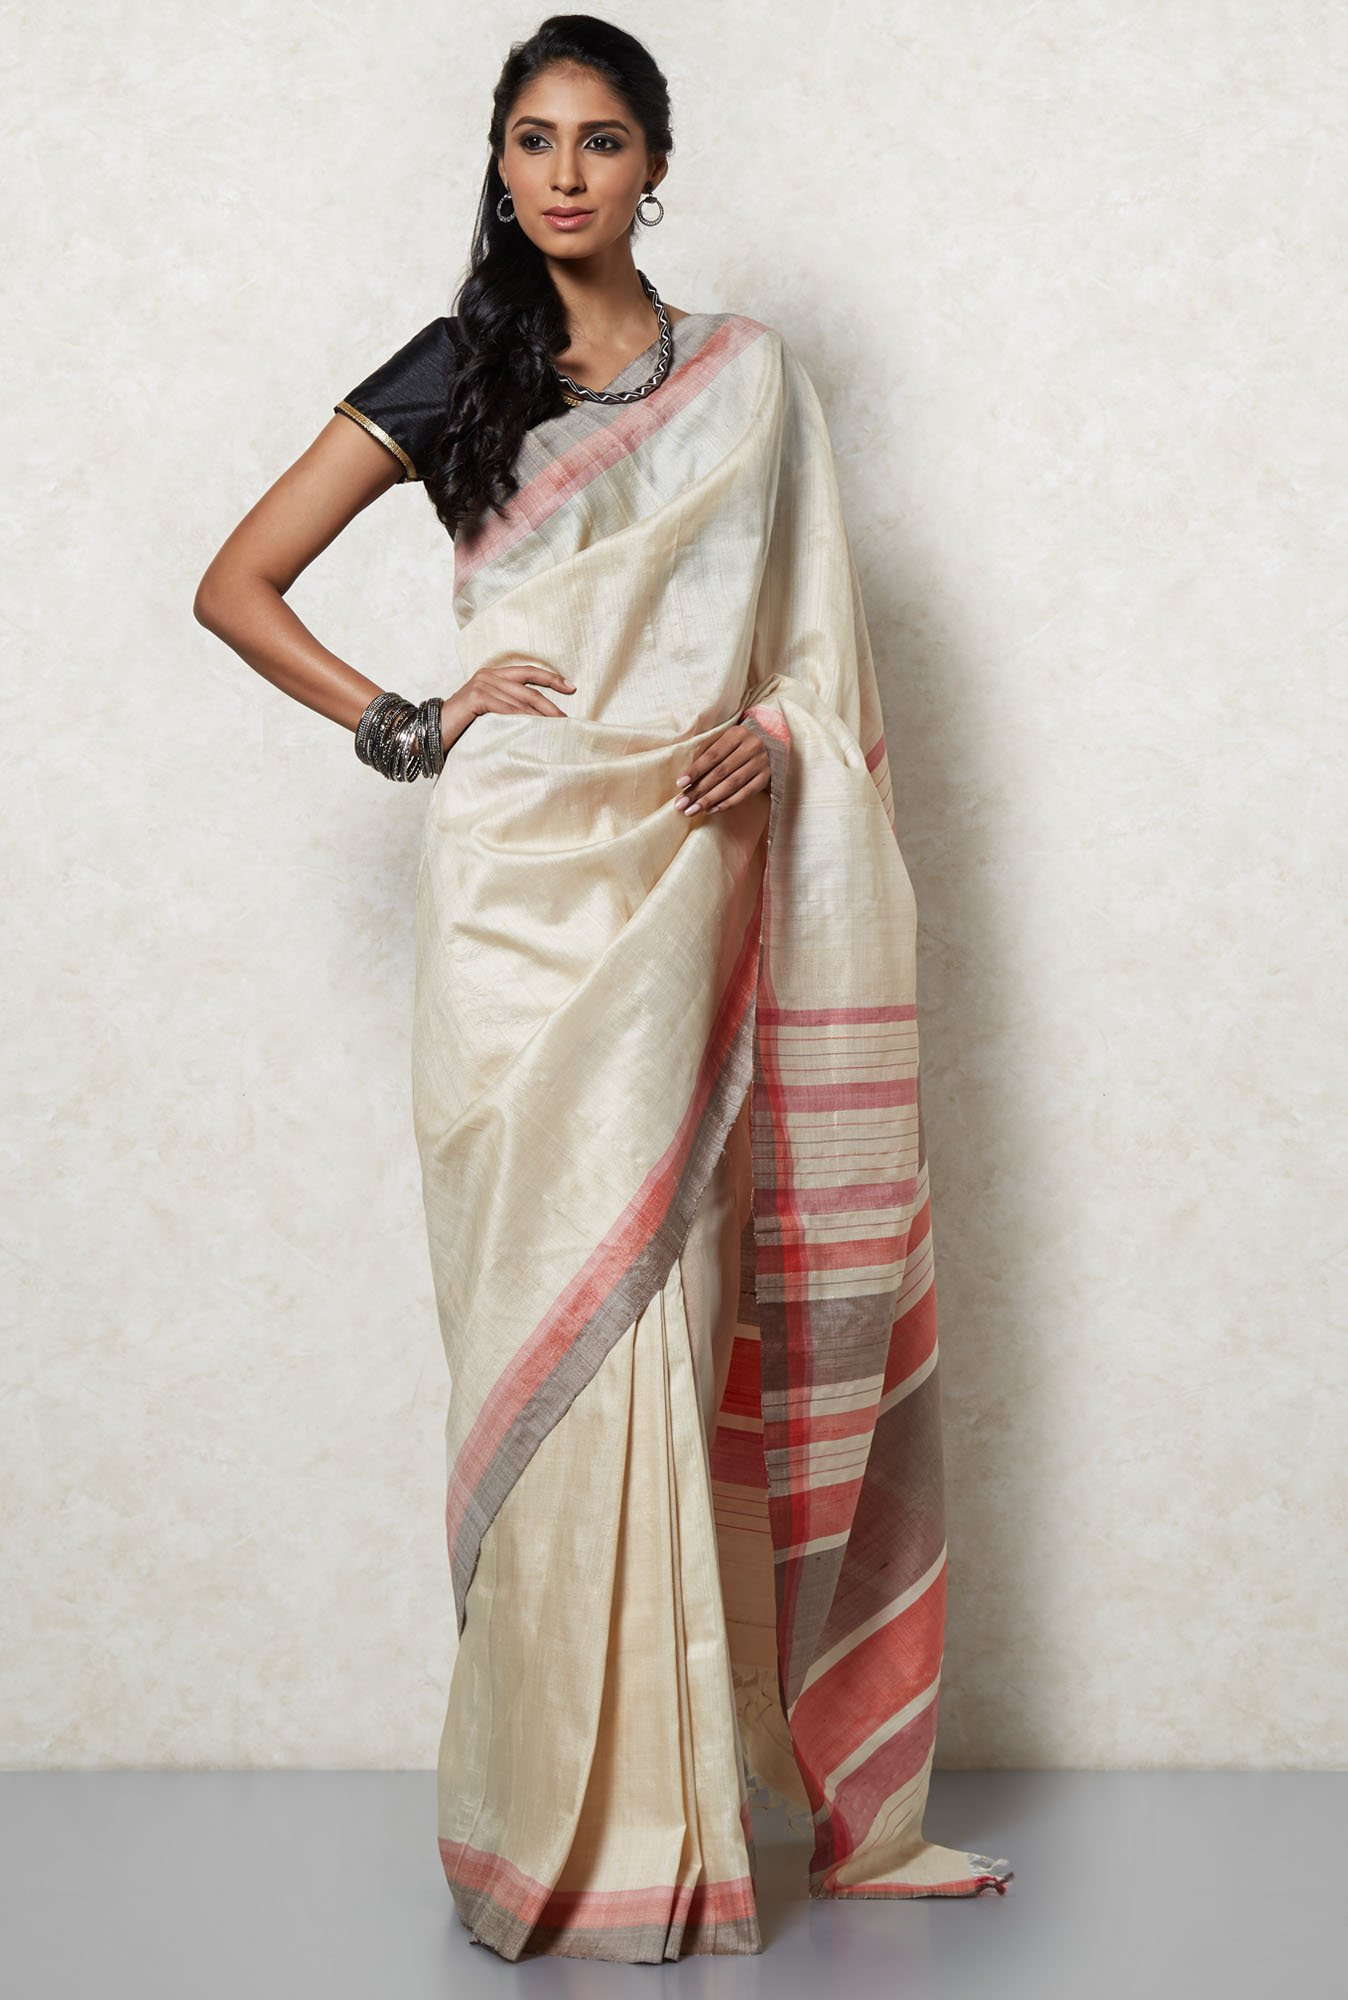 How To Ace Your Look For Your Child's School Admission, It's School Admission Time again And We Have The Best Styling Tips for you! - Okhai Beige Tussar Silk Saree TATA CLiQ Deal